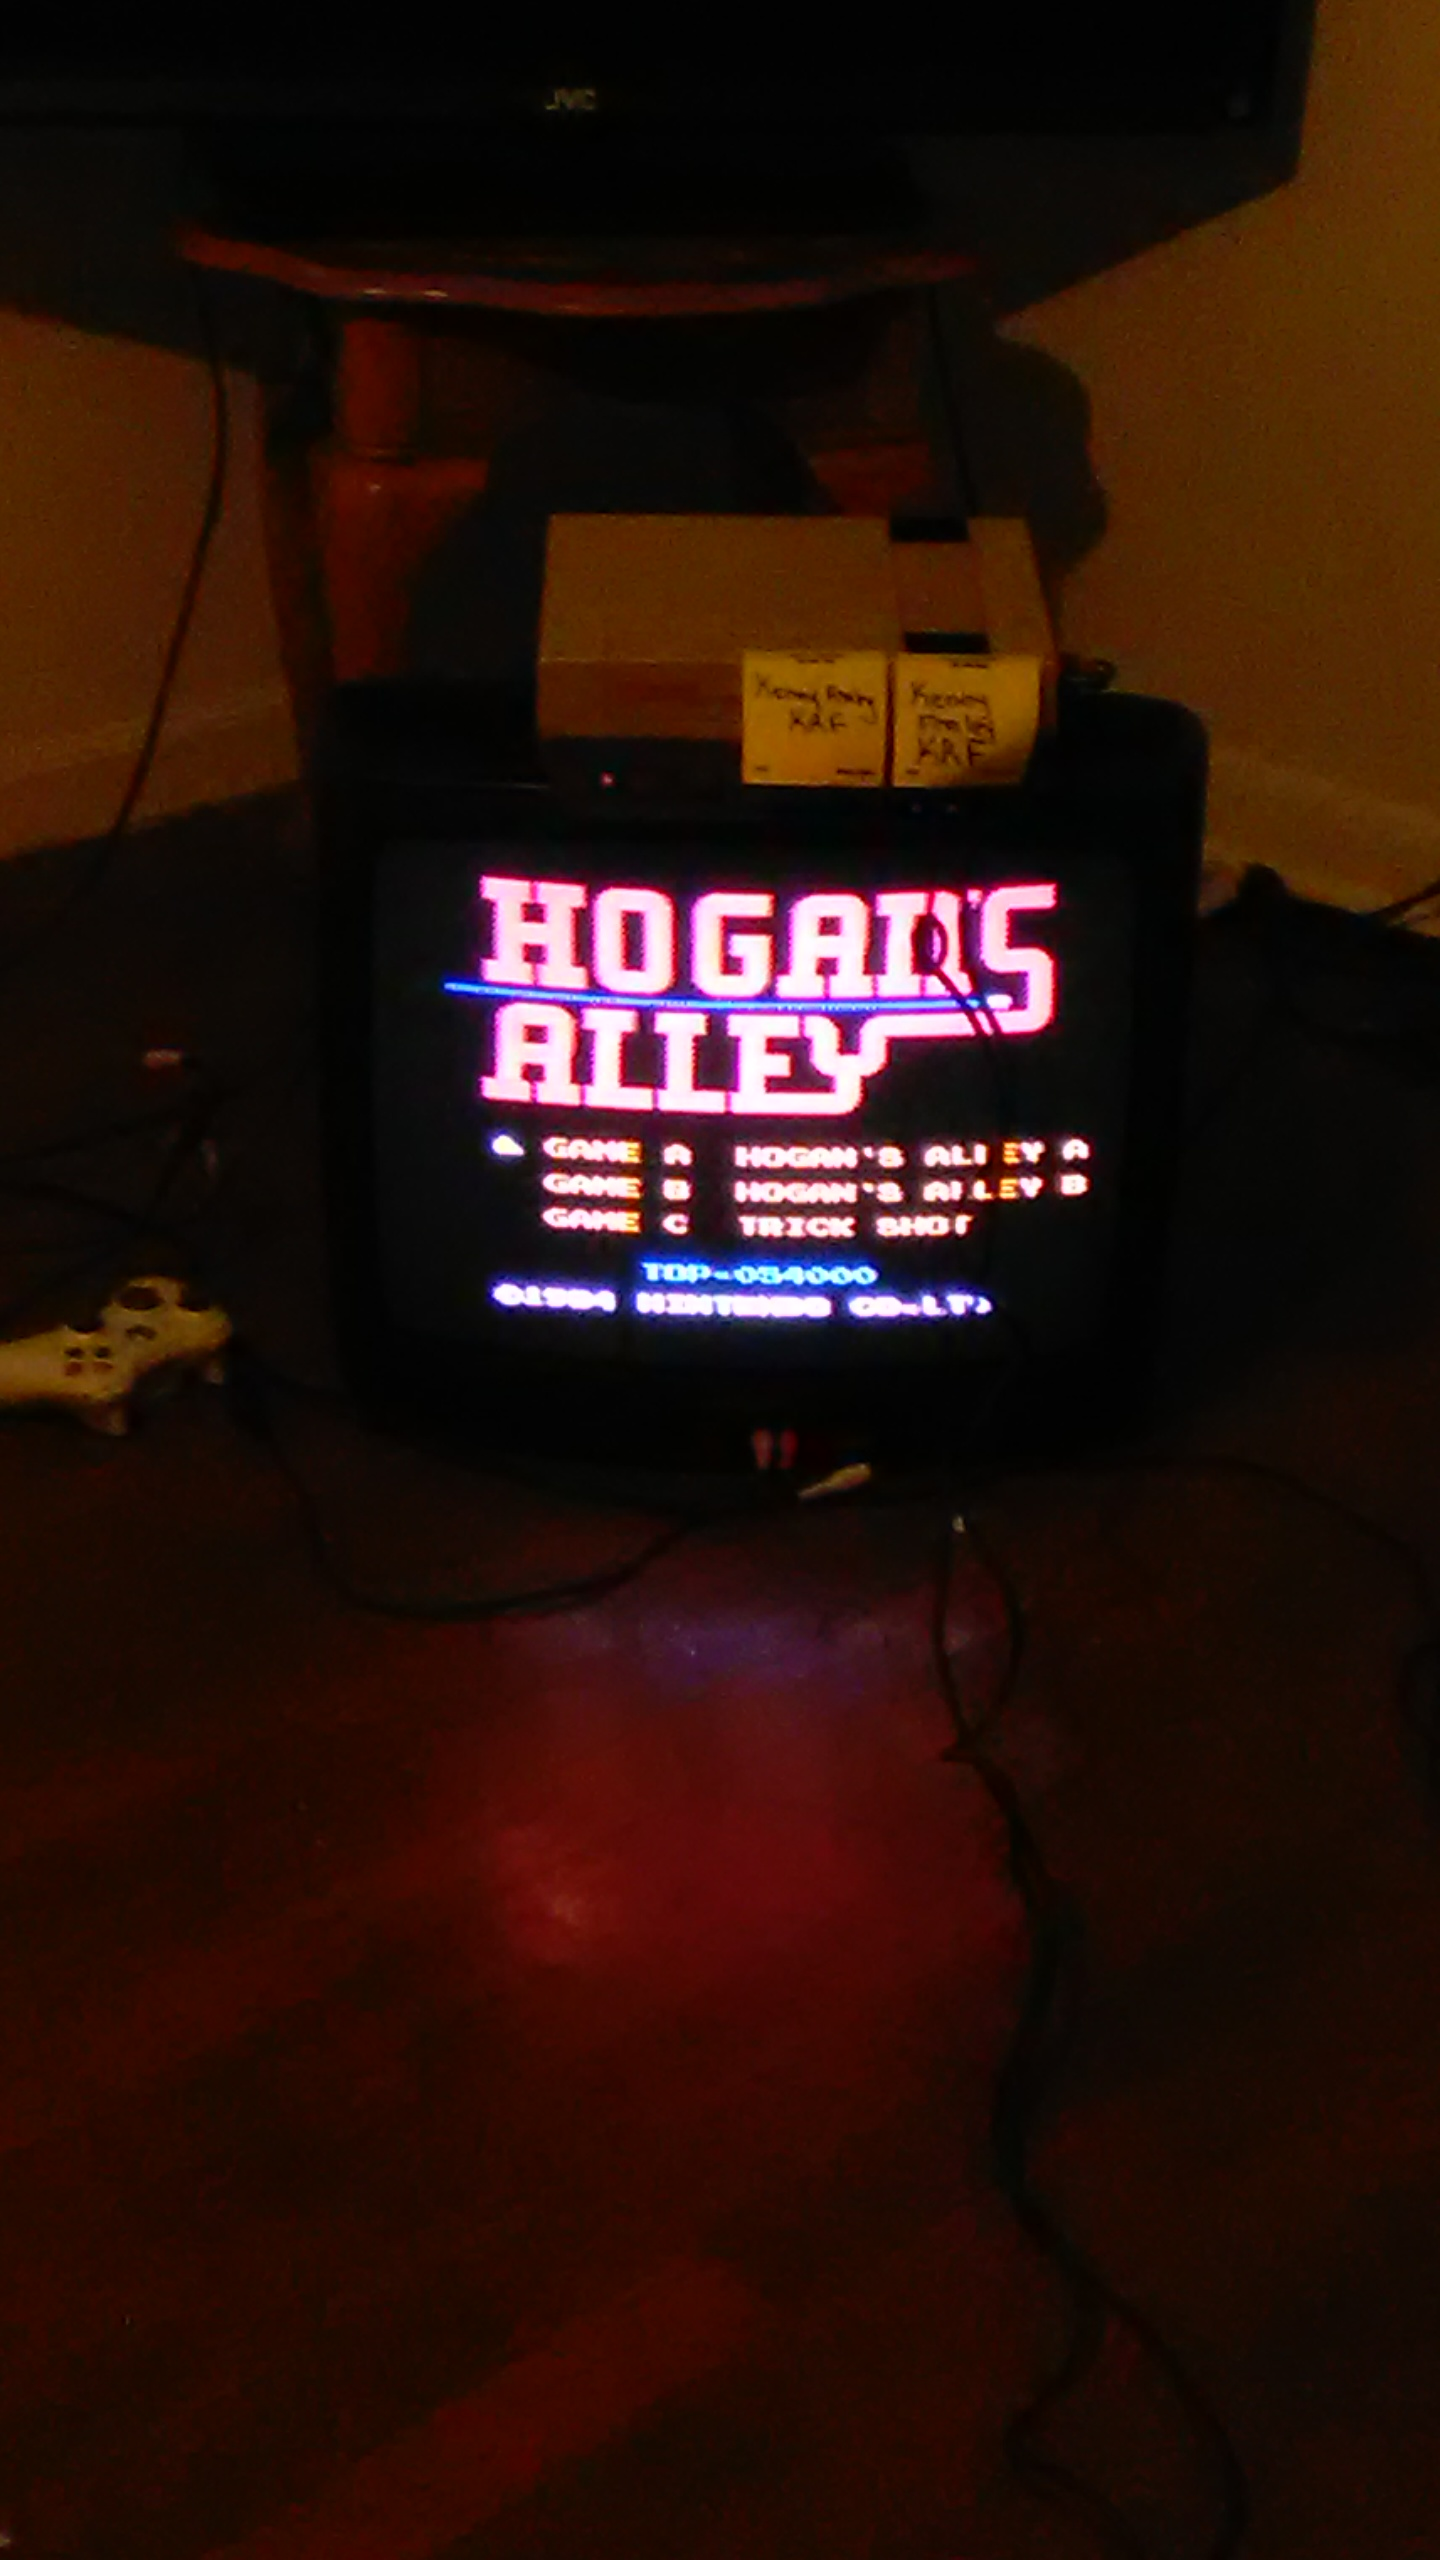 kennyfraley: Hogans Alley: Game A [Any Distance] (NES/Famicom) 40,000 points on 2016-11-21 21:53:02